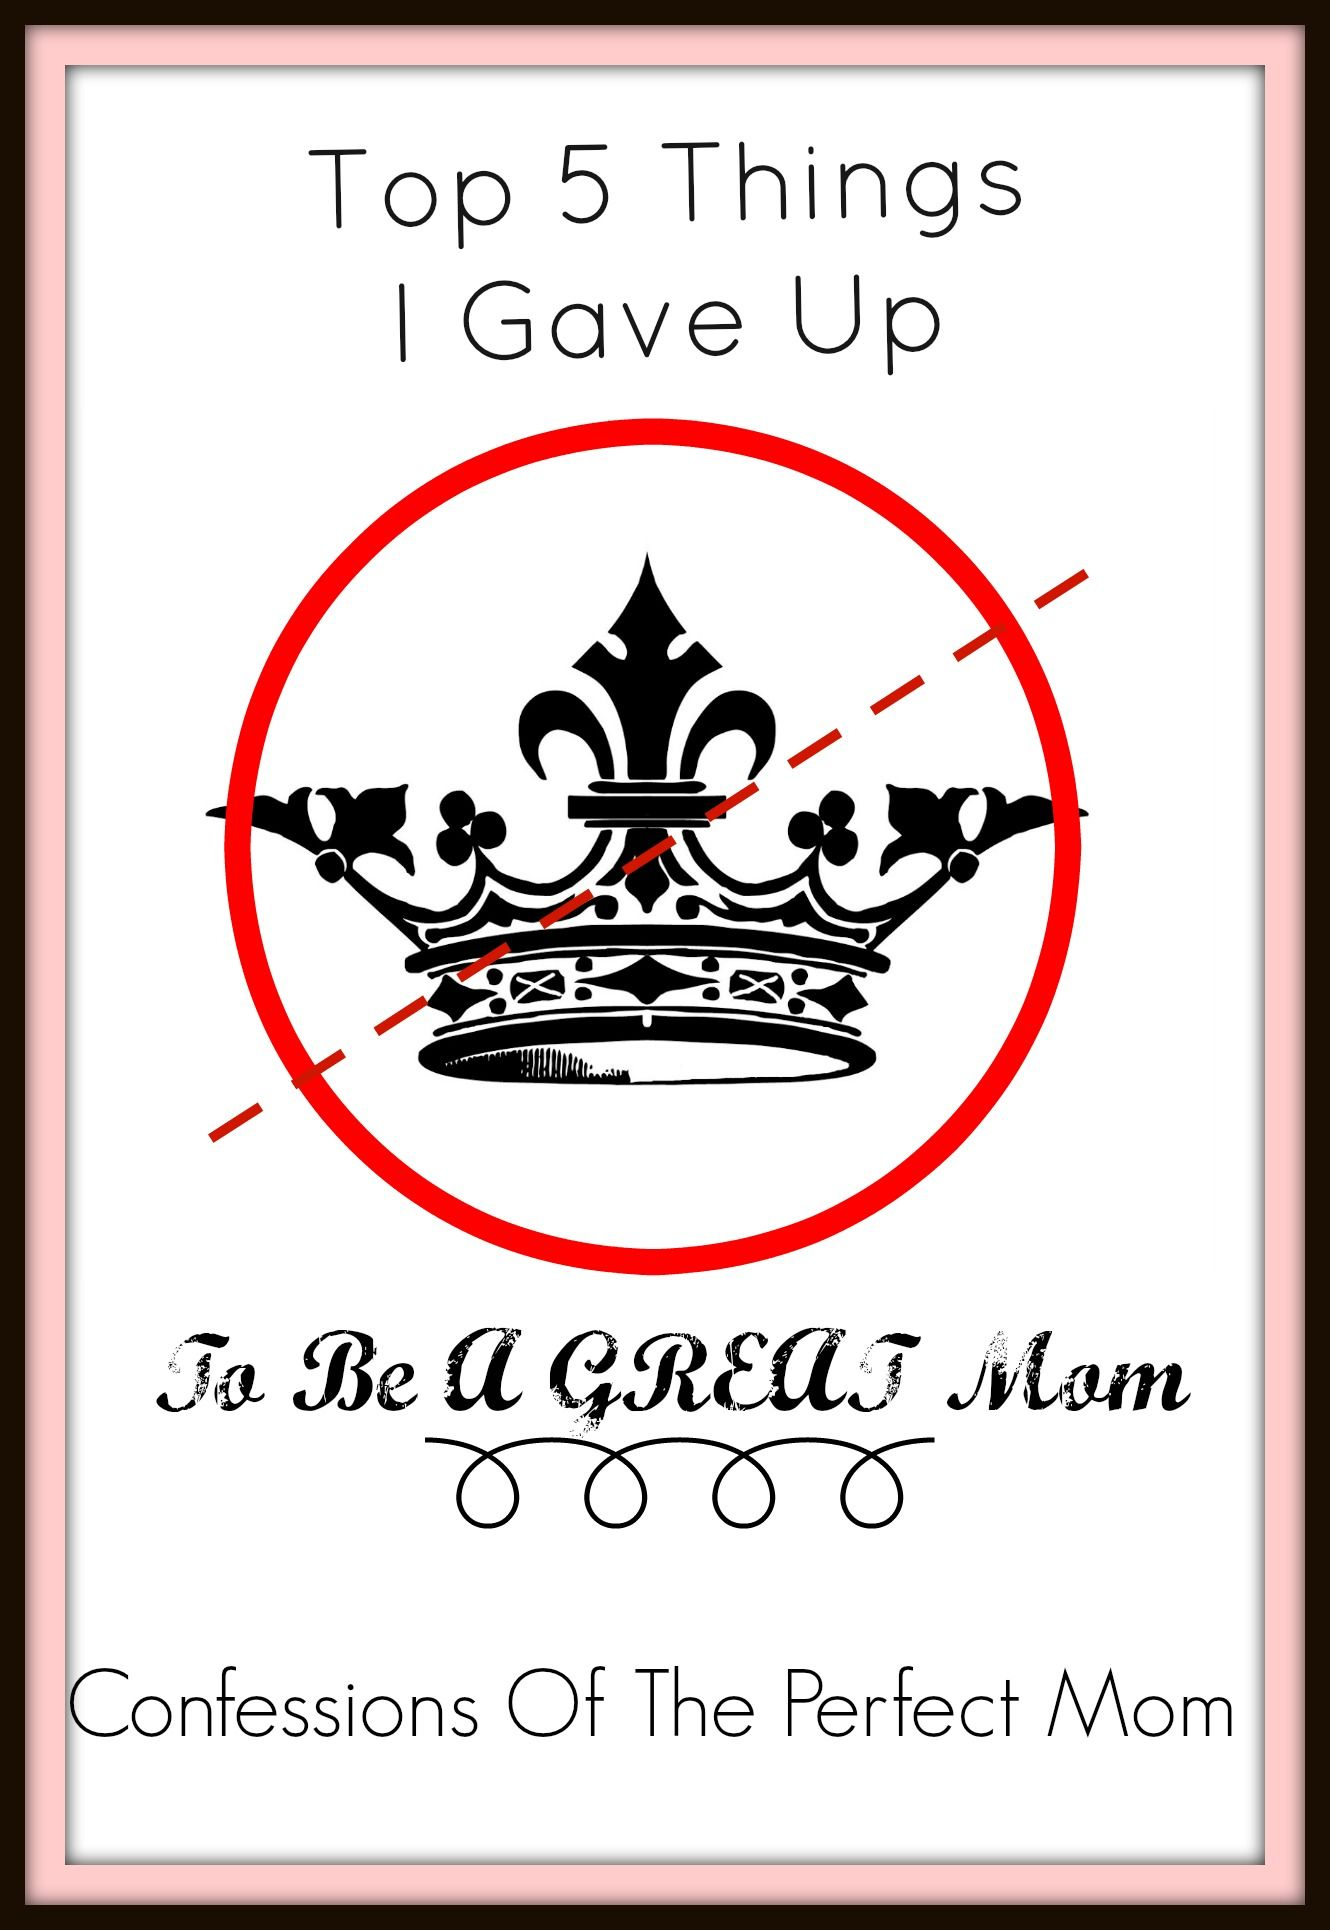 Top 5 Things I Gave Up To Be a Great Mom